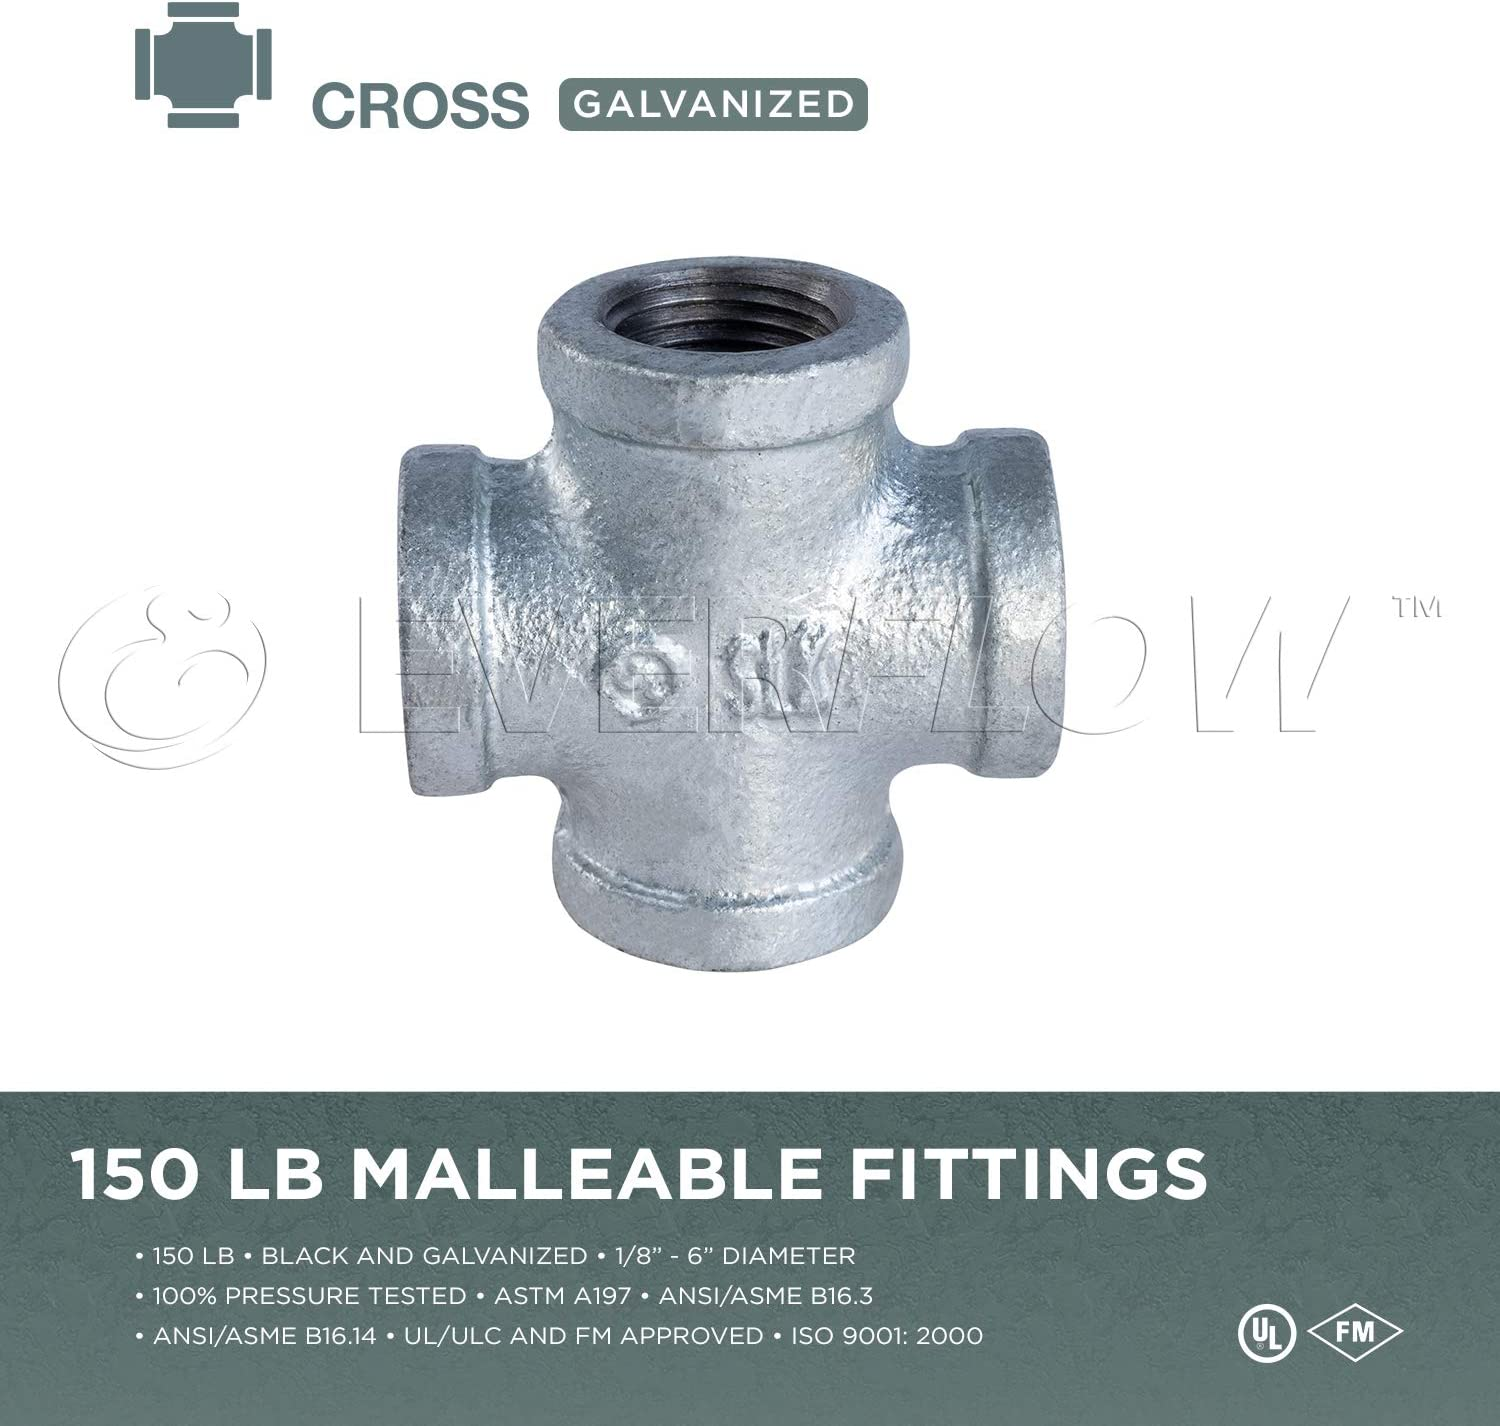 Everflow Supplies GMCR0100 1 Galvanized Malleable Iron Cross Fitting for 150 lb Applications and with Equal Sized Female Threaded Connects